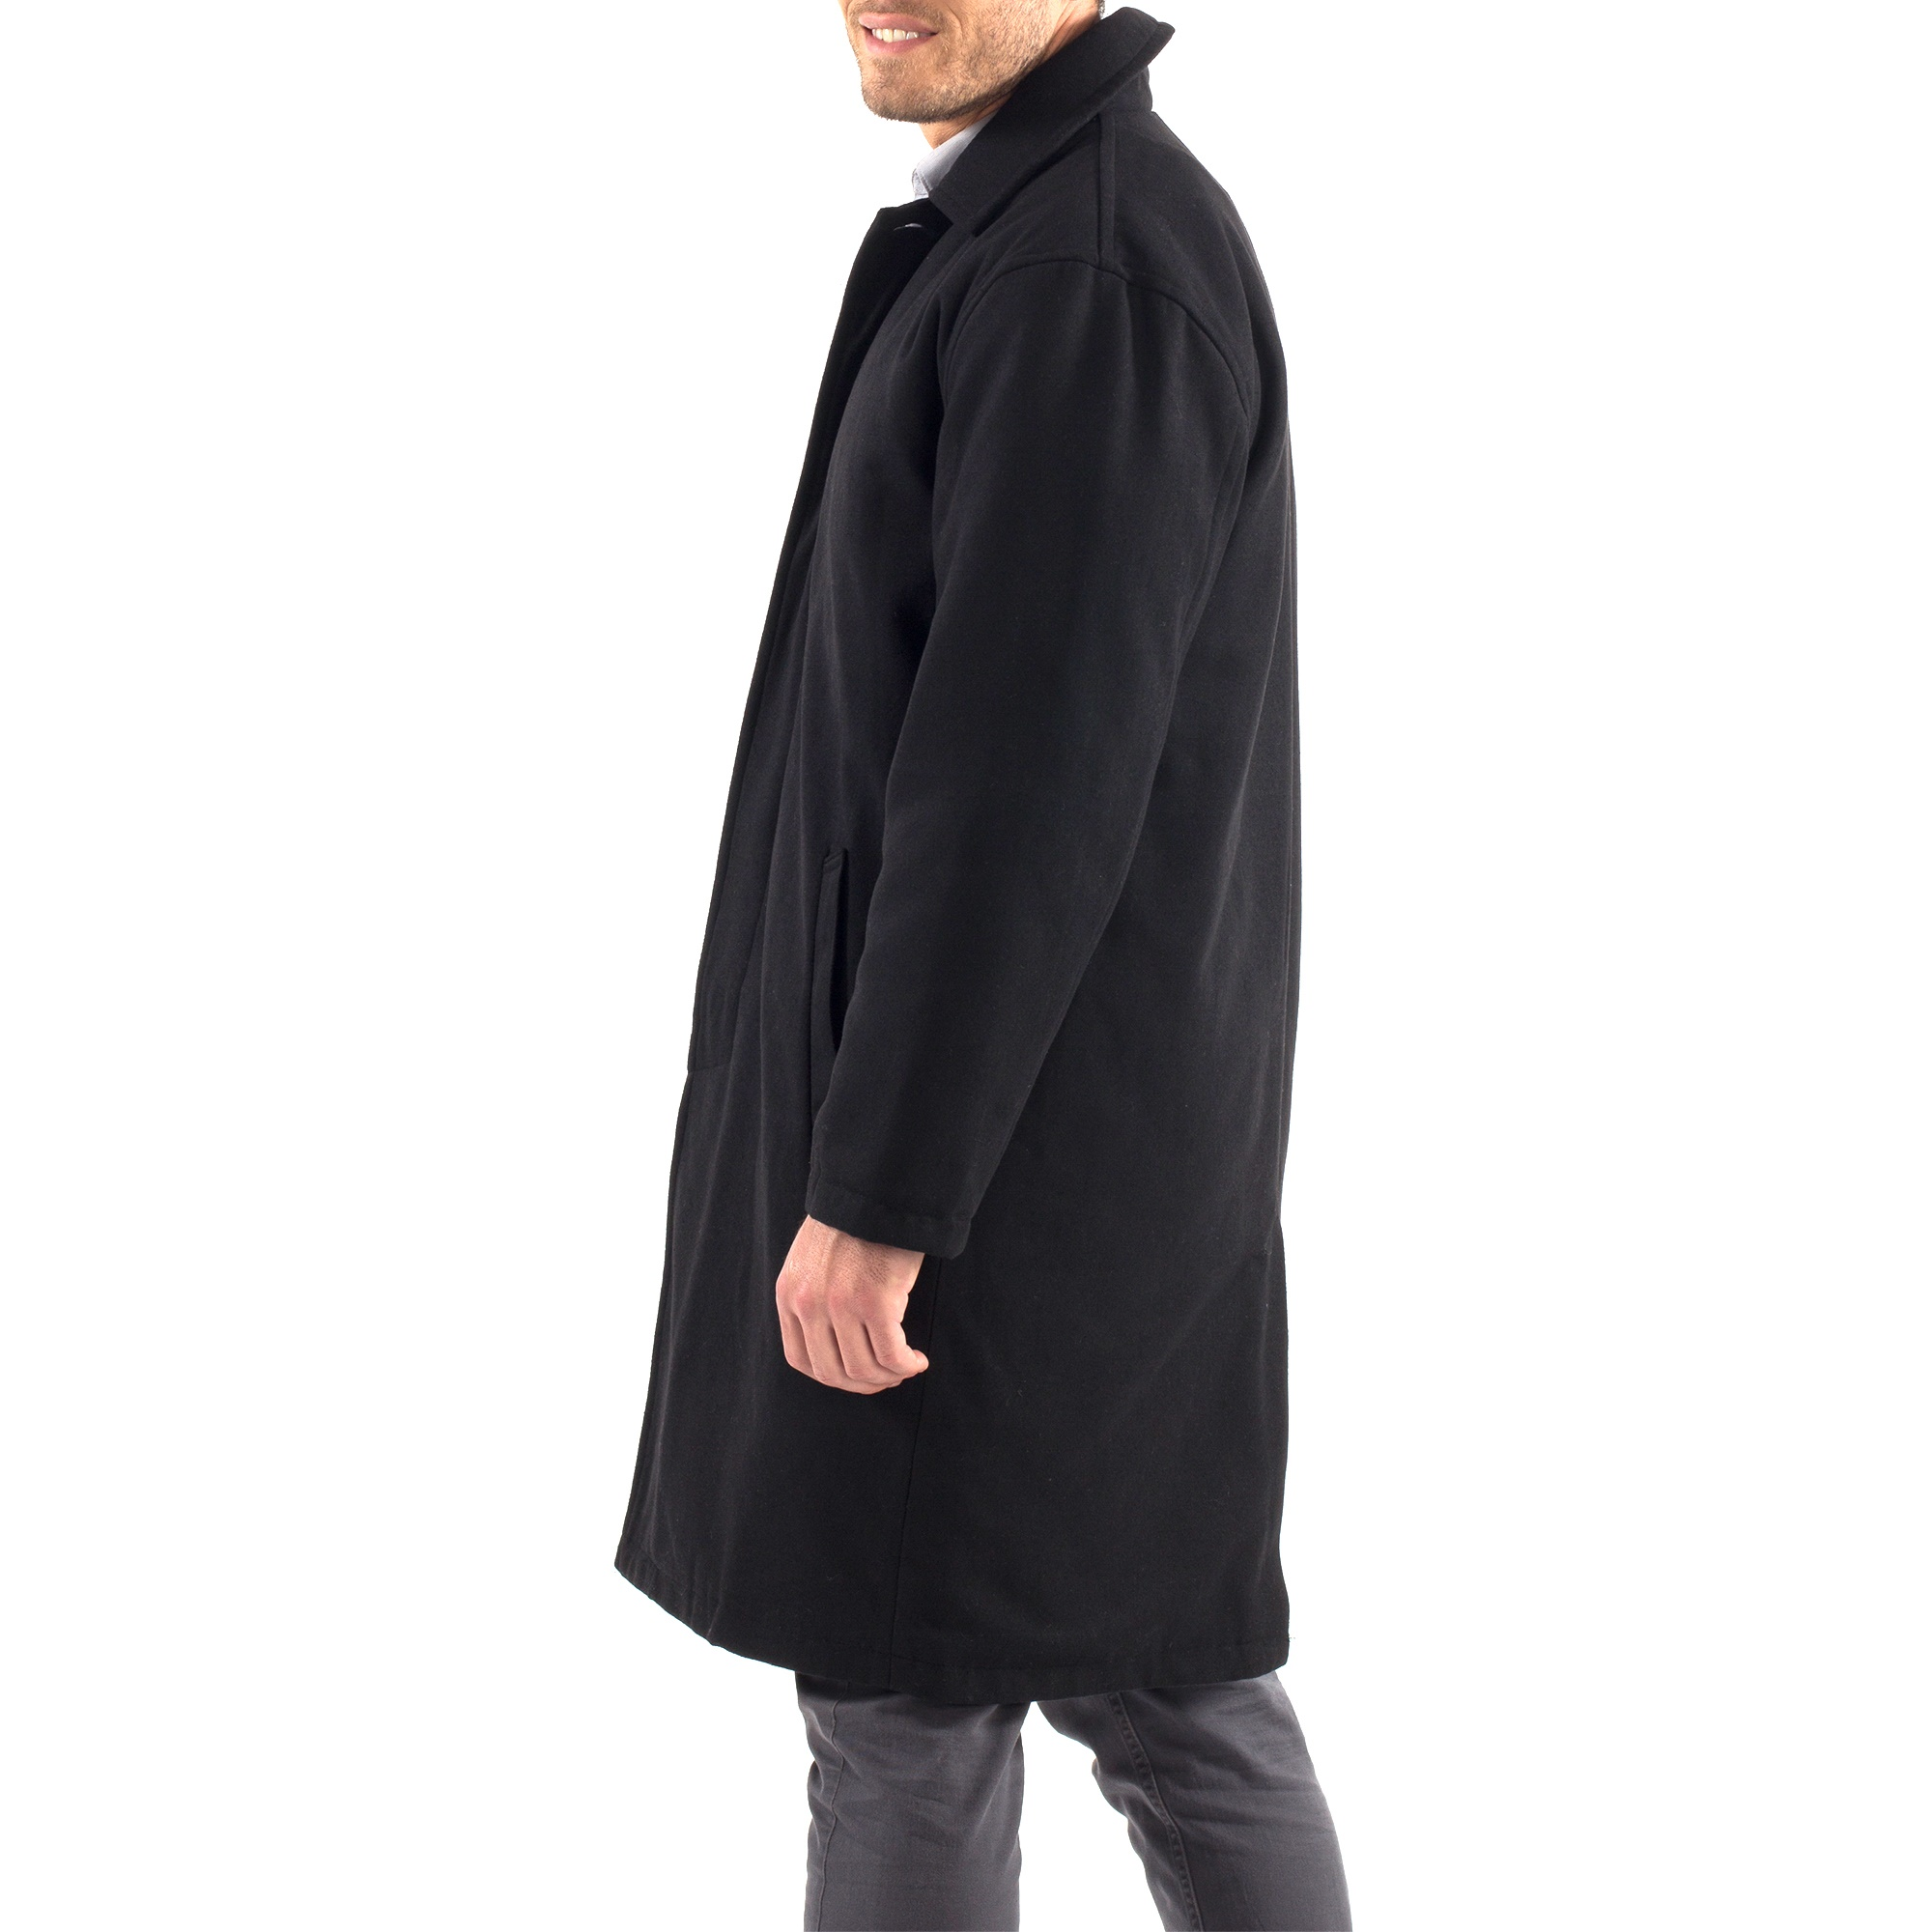 Alpine-Swiss-Mens-Zach-Knee-Length-Jacket-Top-Coat-Trench-Wool-Blend-Overcoat thumbnail 20